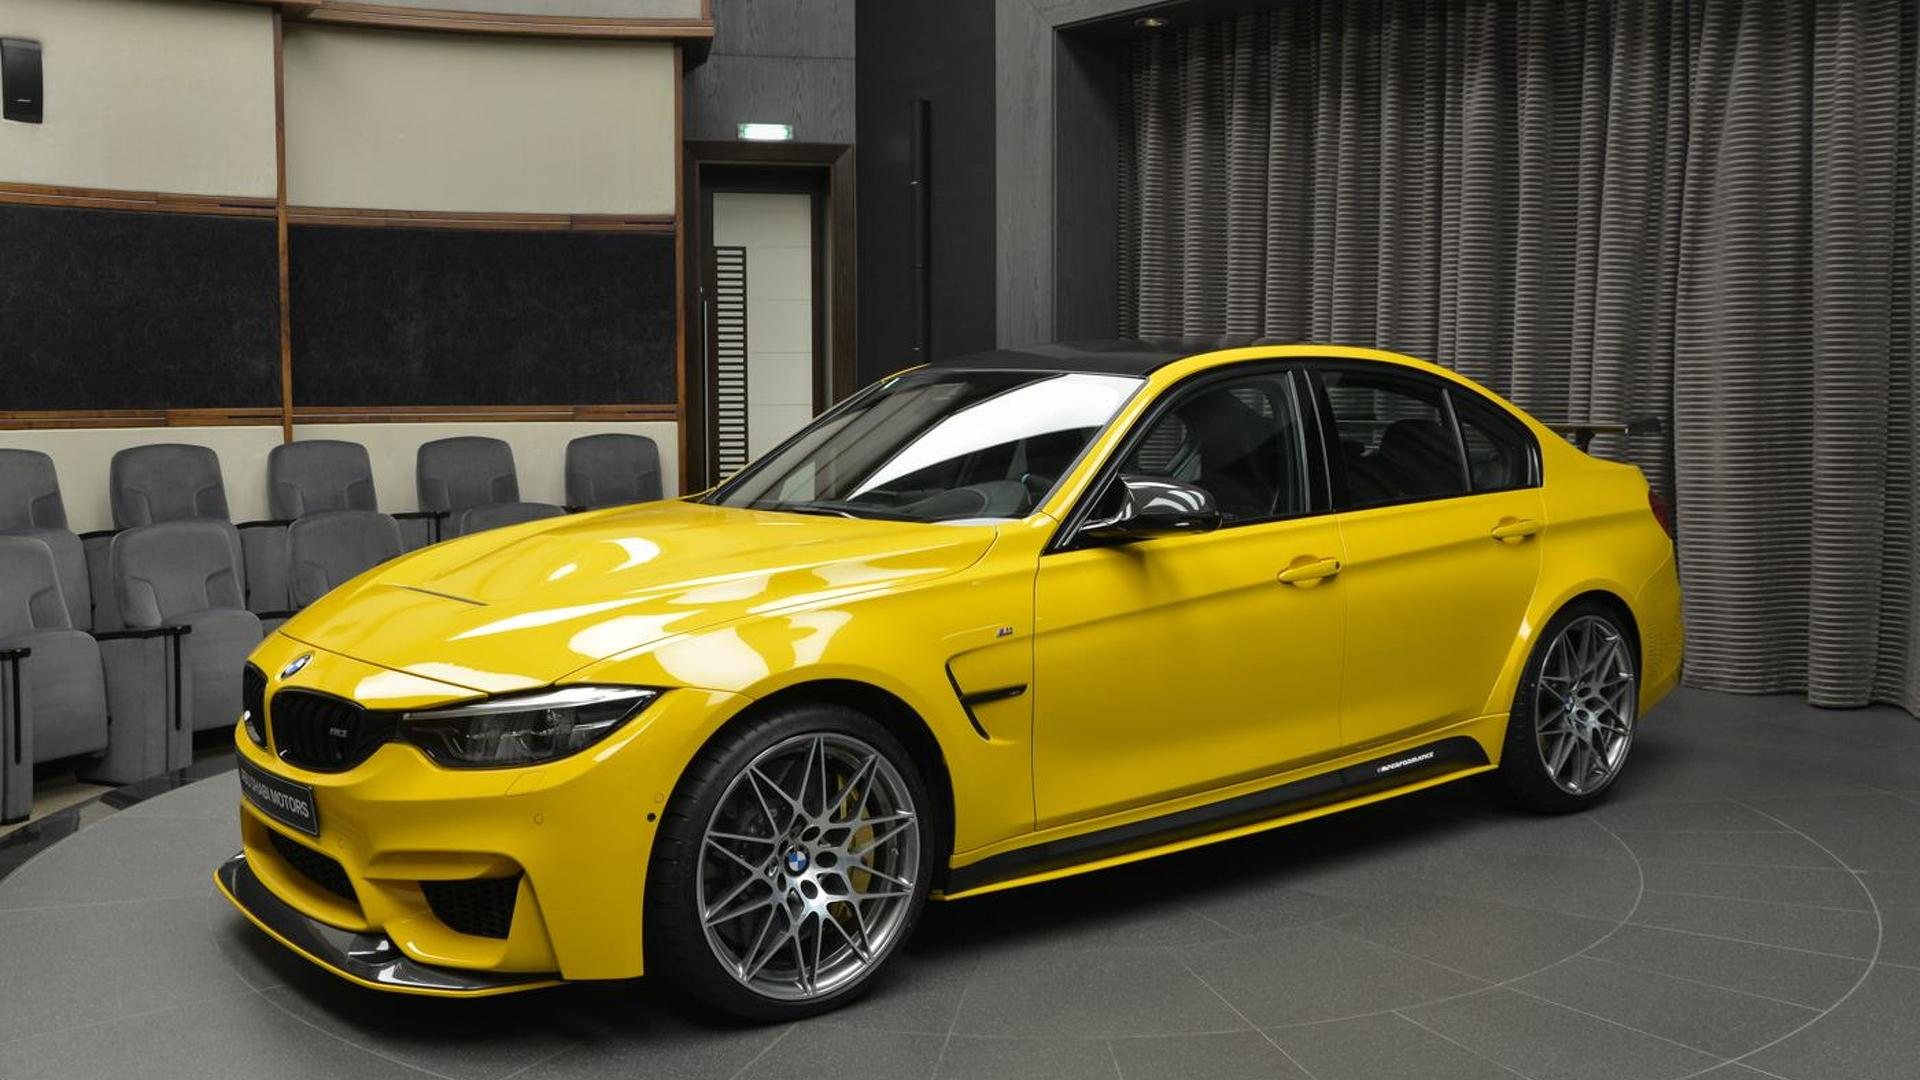 BMW_M3_Speed_Yellow_03